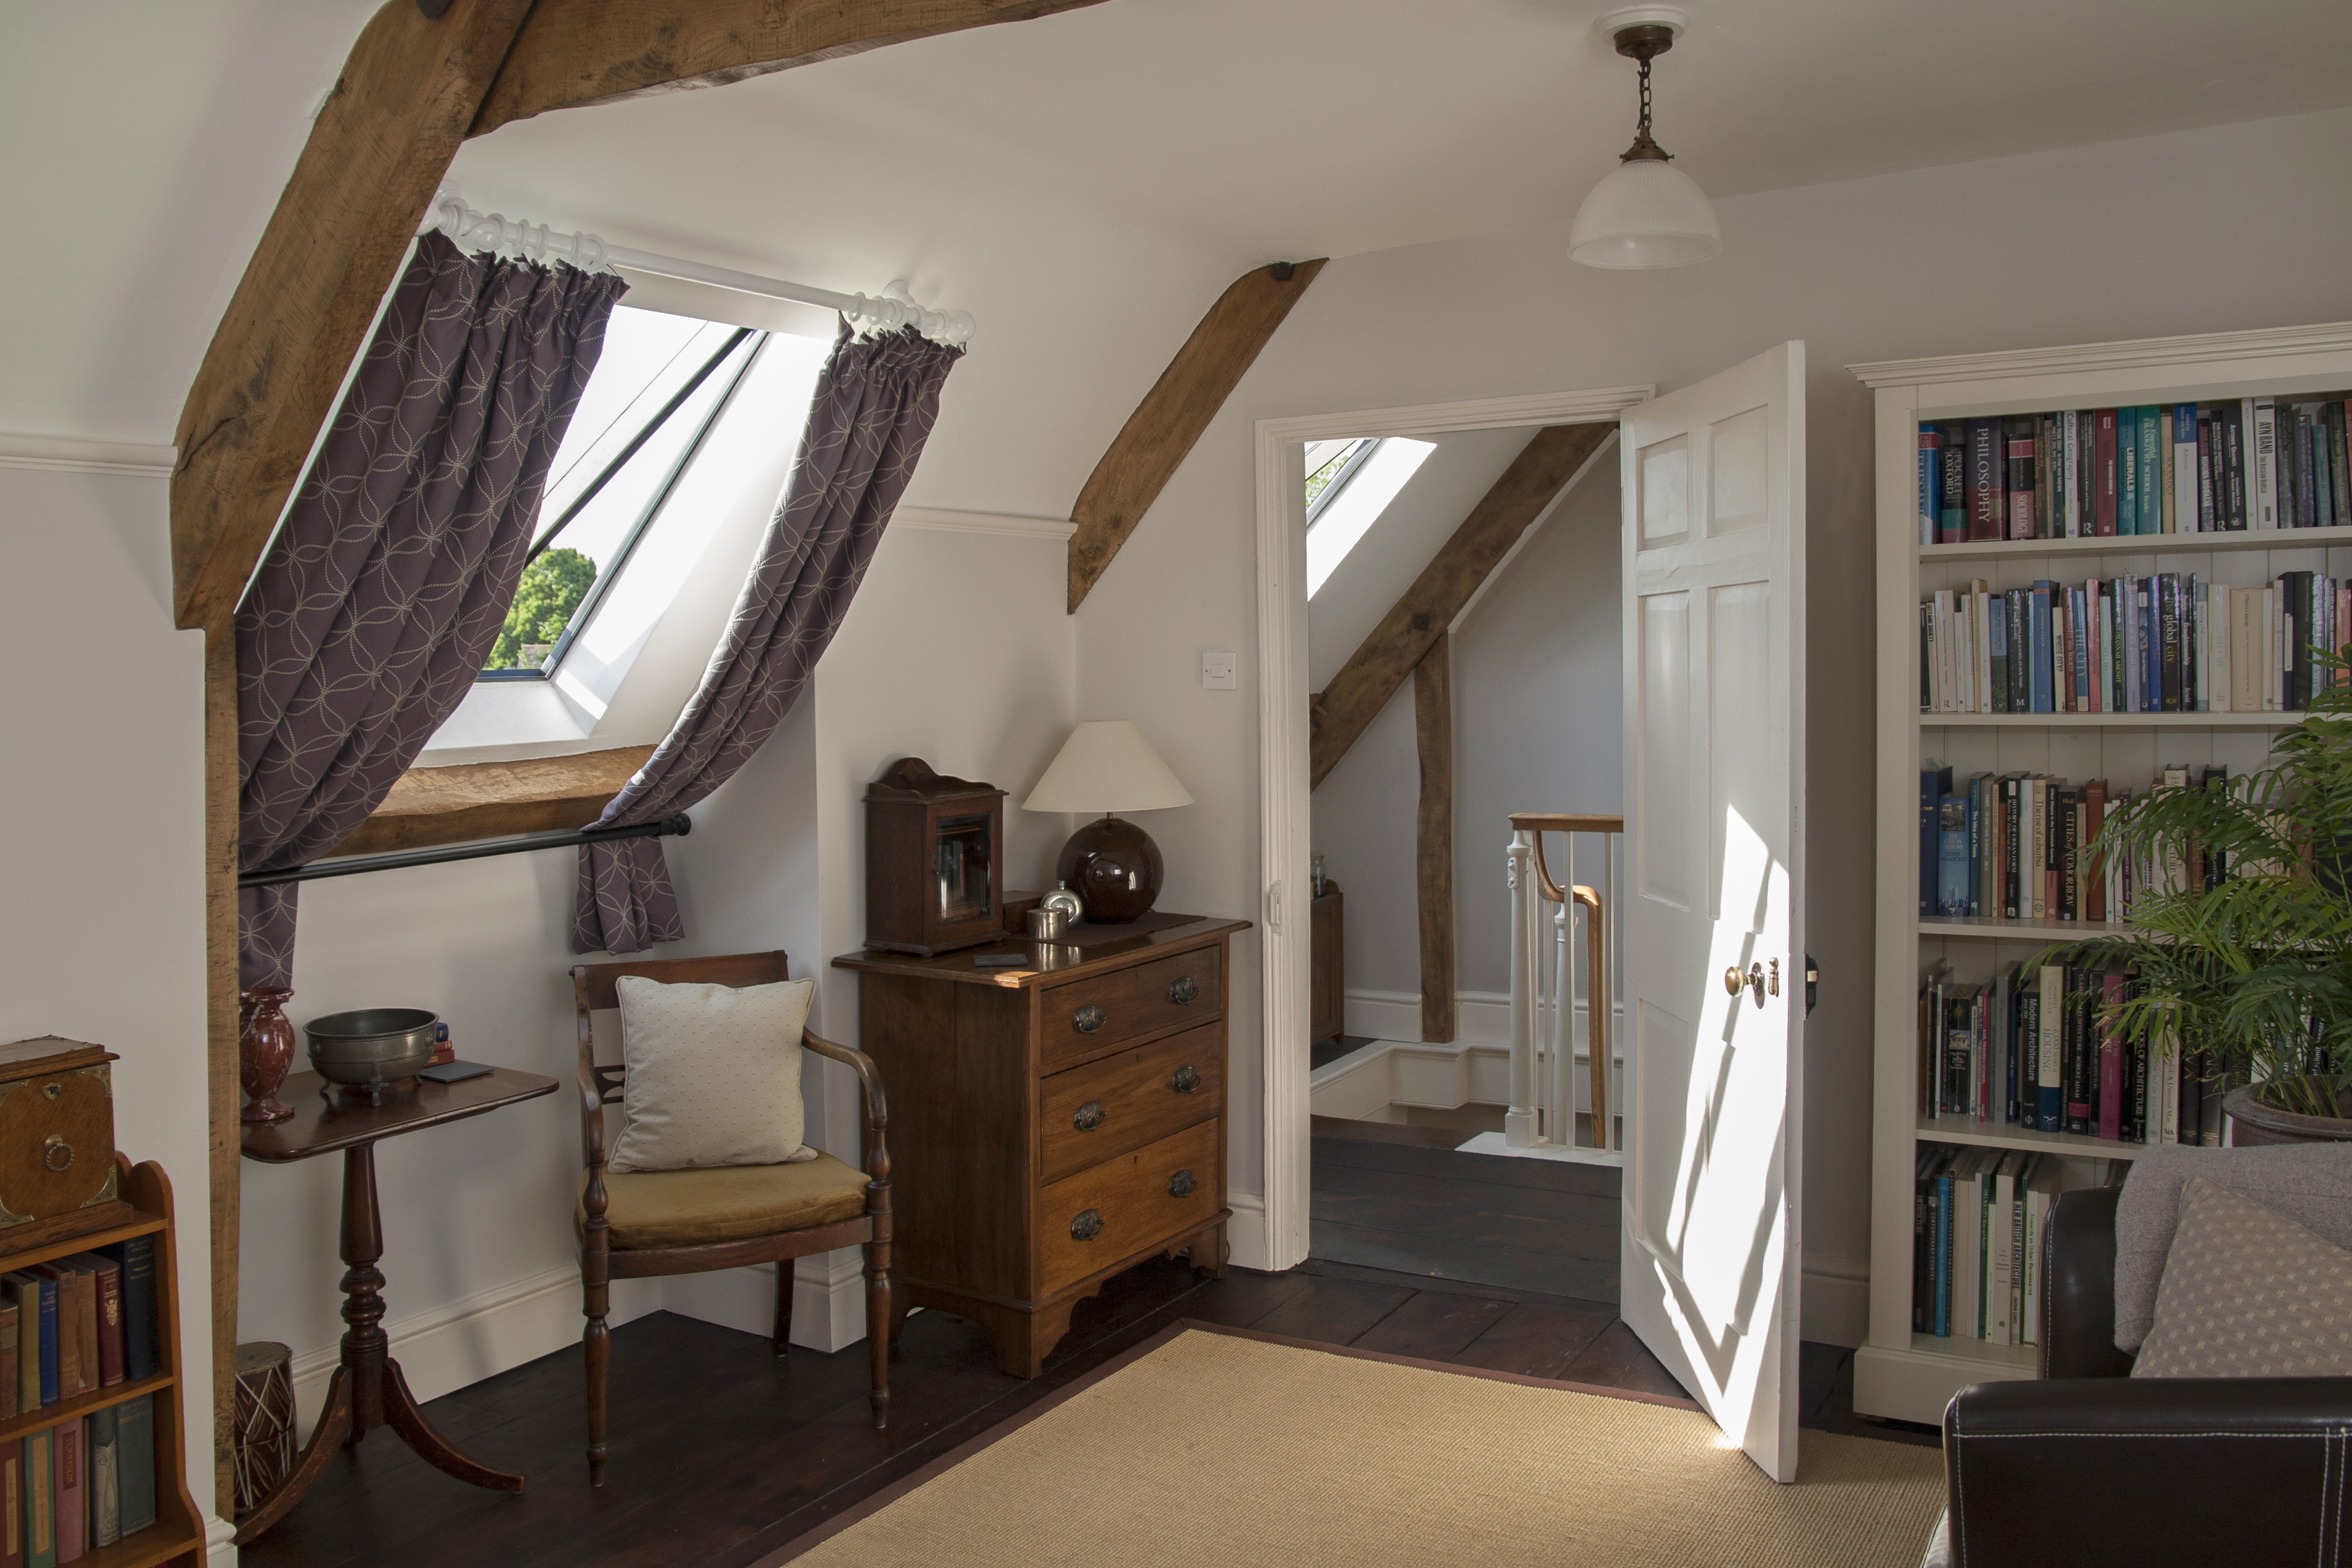 Conservation of a listed Georgian house in Martock, Somerset - refurbishment of attic